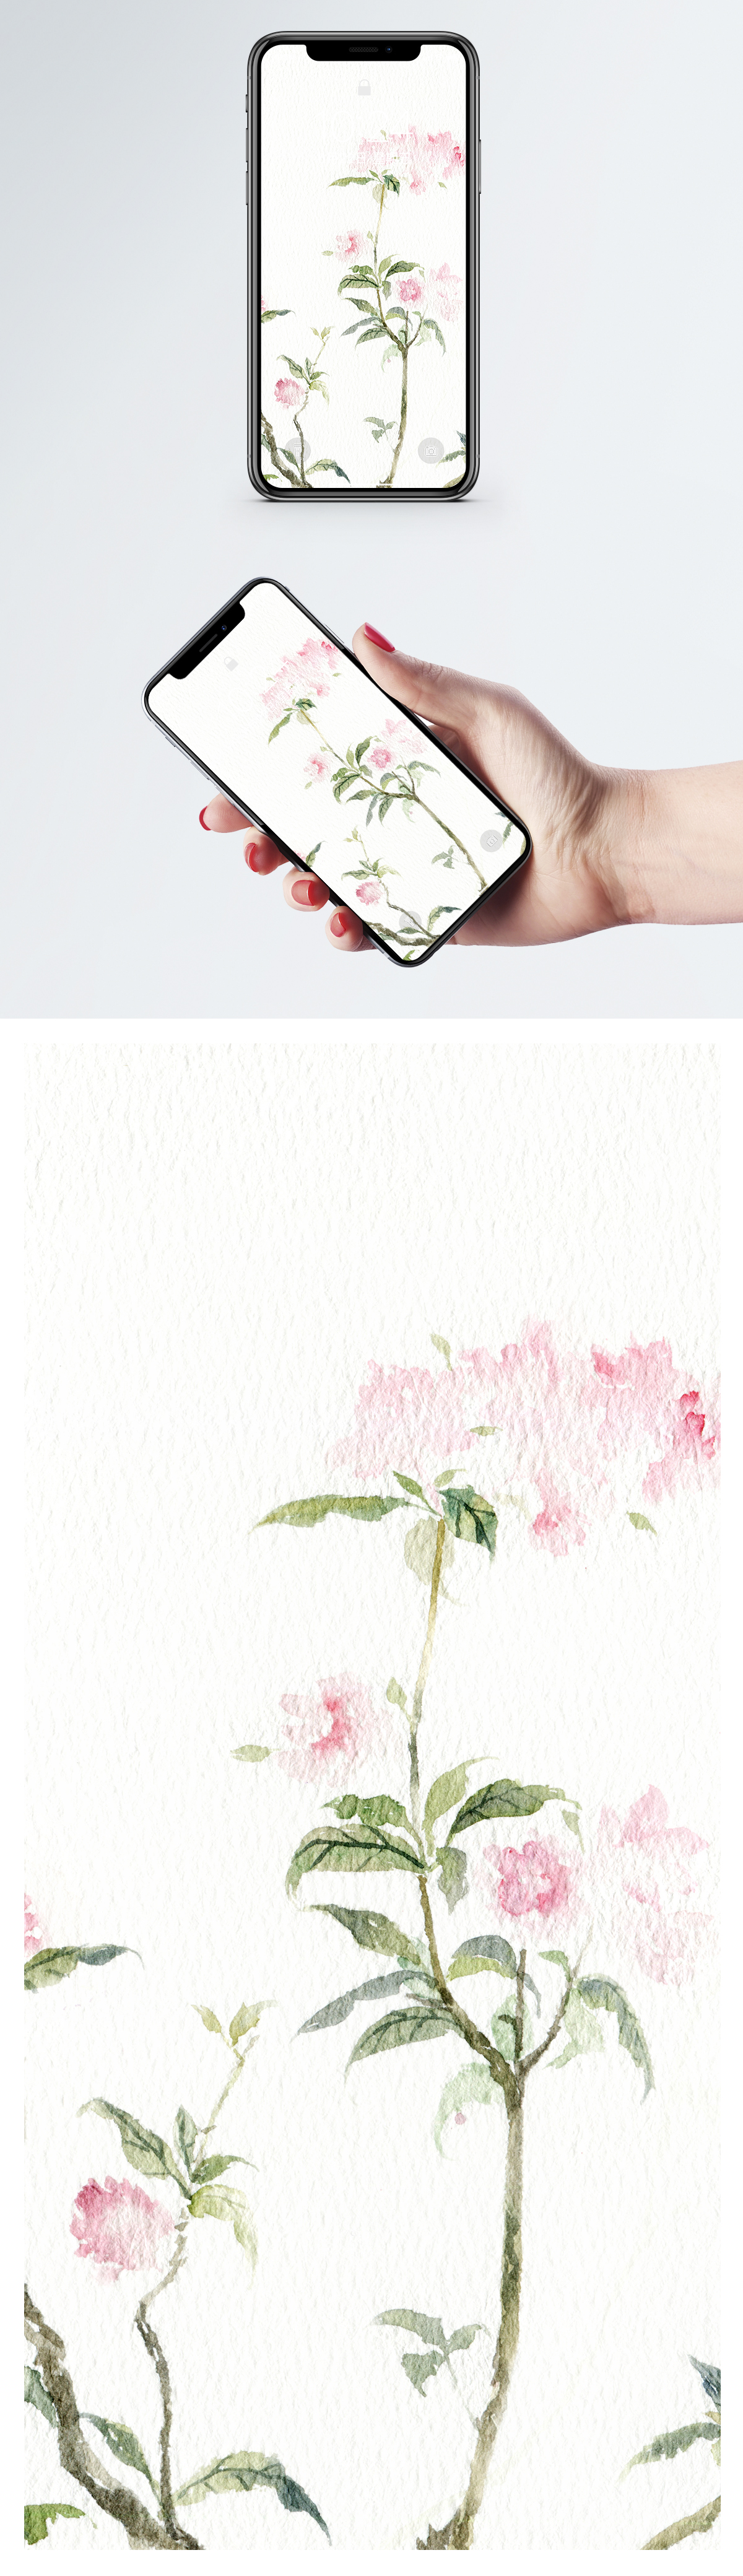 Watercolor Magpie Mobile Wallpaper Backgrounds Image Picture Free